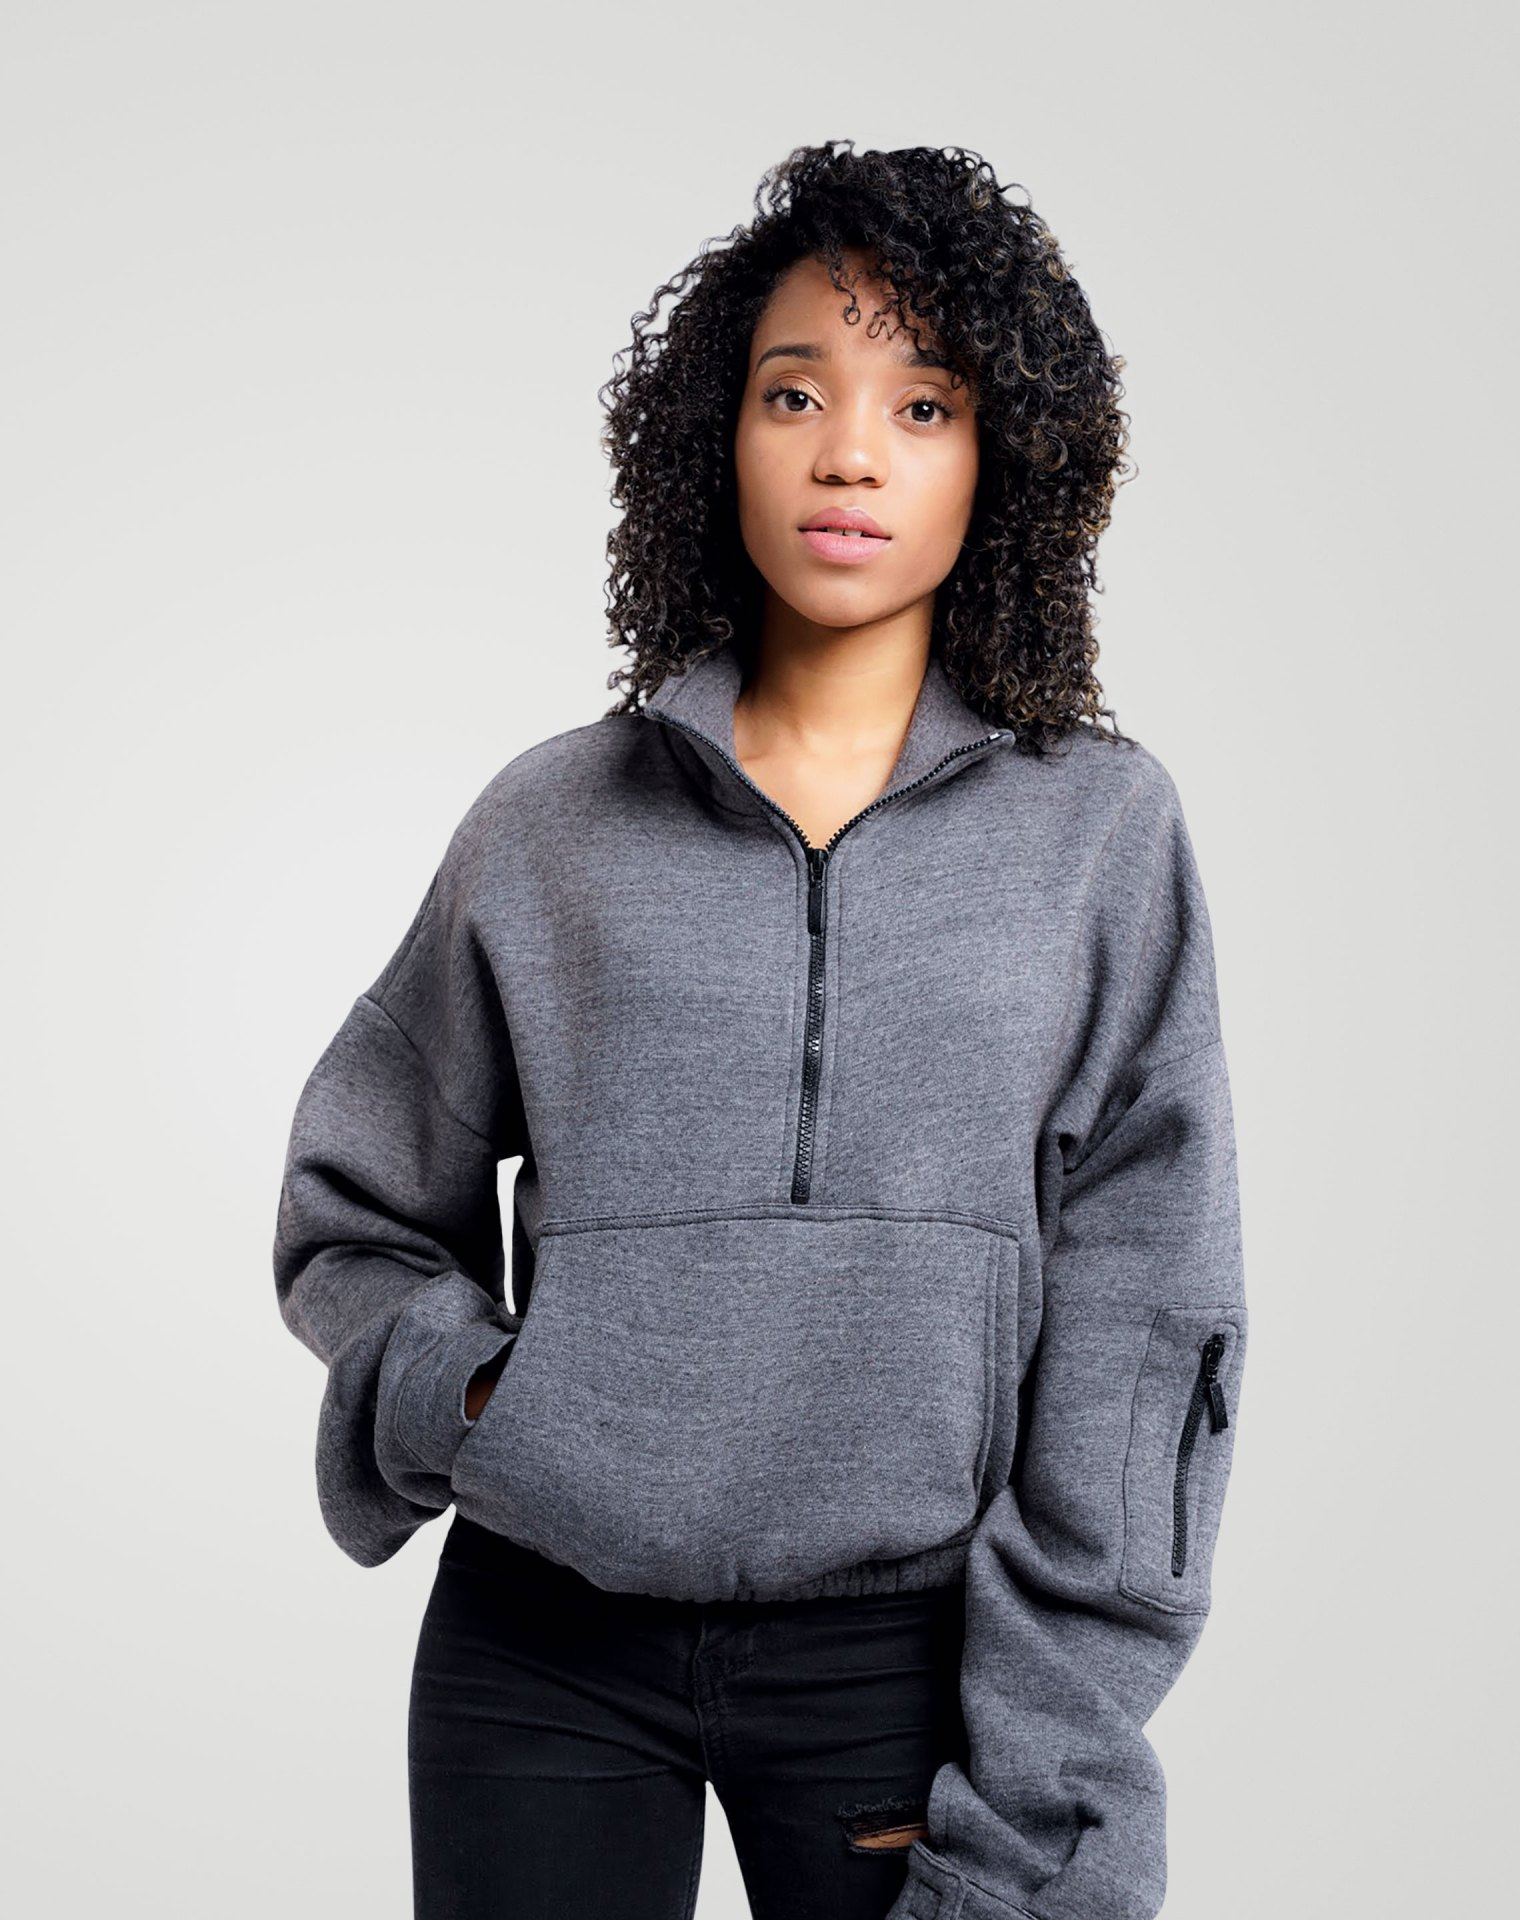 Image 3 of Womens High Neck Crop Top Zipper Pullover color Grey and sizes 8,10,12 from Noroze